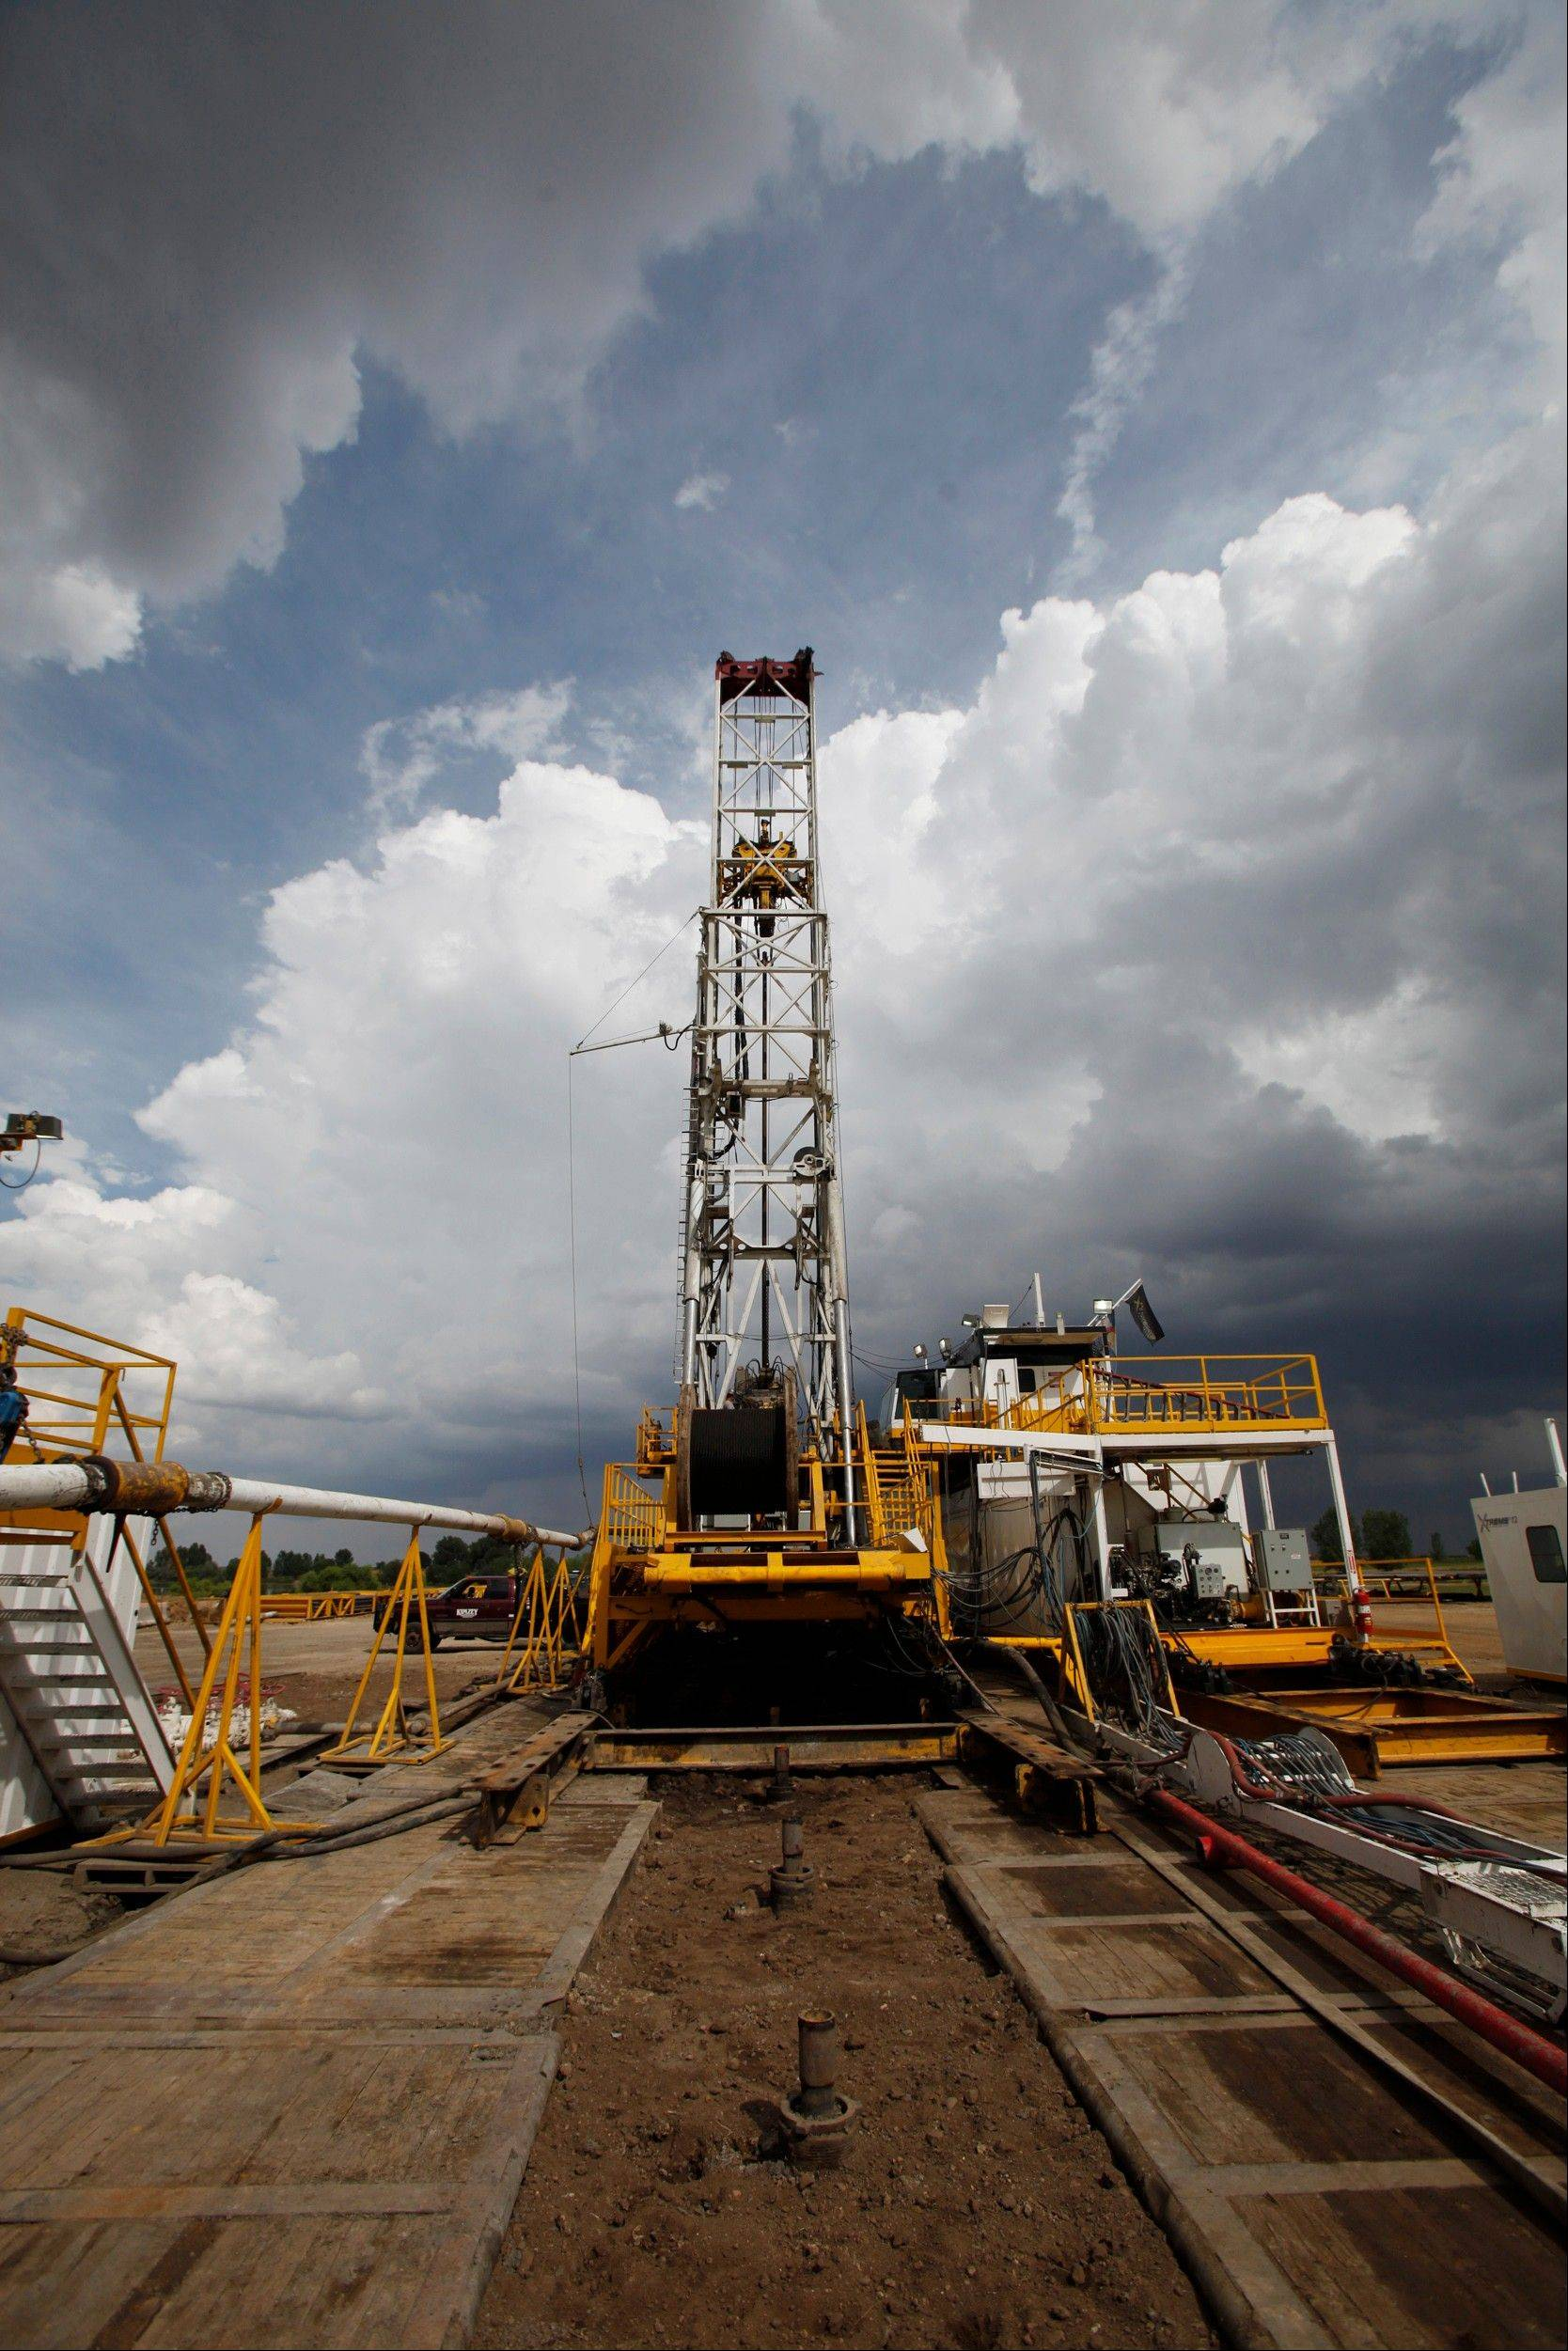 This Aug. 25, 2009. file photo shows capped wells in the foreground as Anadarko Petroleum Corp., drills a series of wells on a pad on a Weld County farm near Mead, Colo. in the northeastern part of the state. The drilling process called hydraulic fracturing, or fracking, is shaking up world energy markets from Washington to Moscow to Beijing. Some predict what was once unthinkable: that the U.S. won't need to import natural gas in the near future, and that Russia could be the big loser.